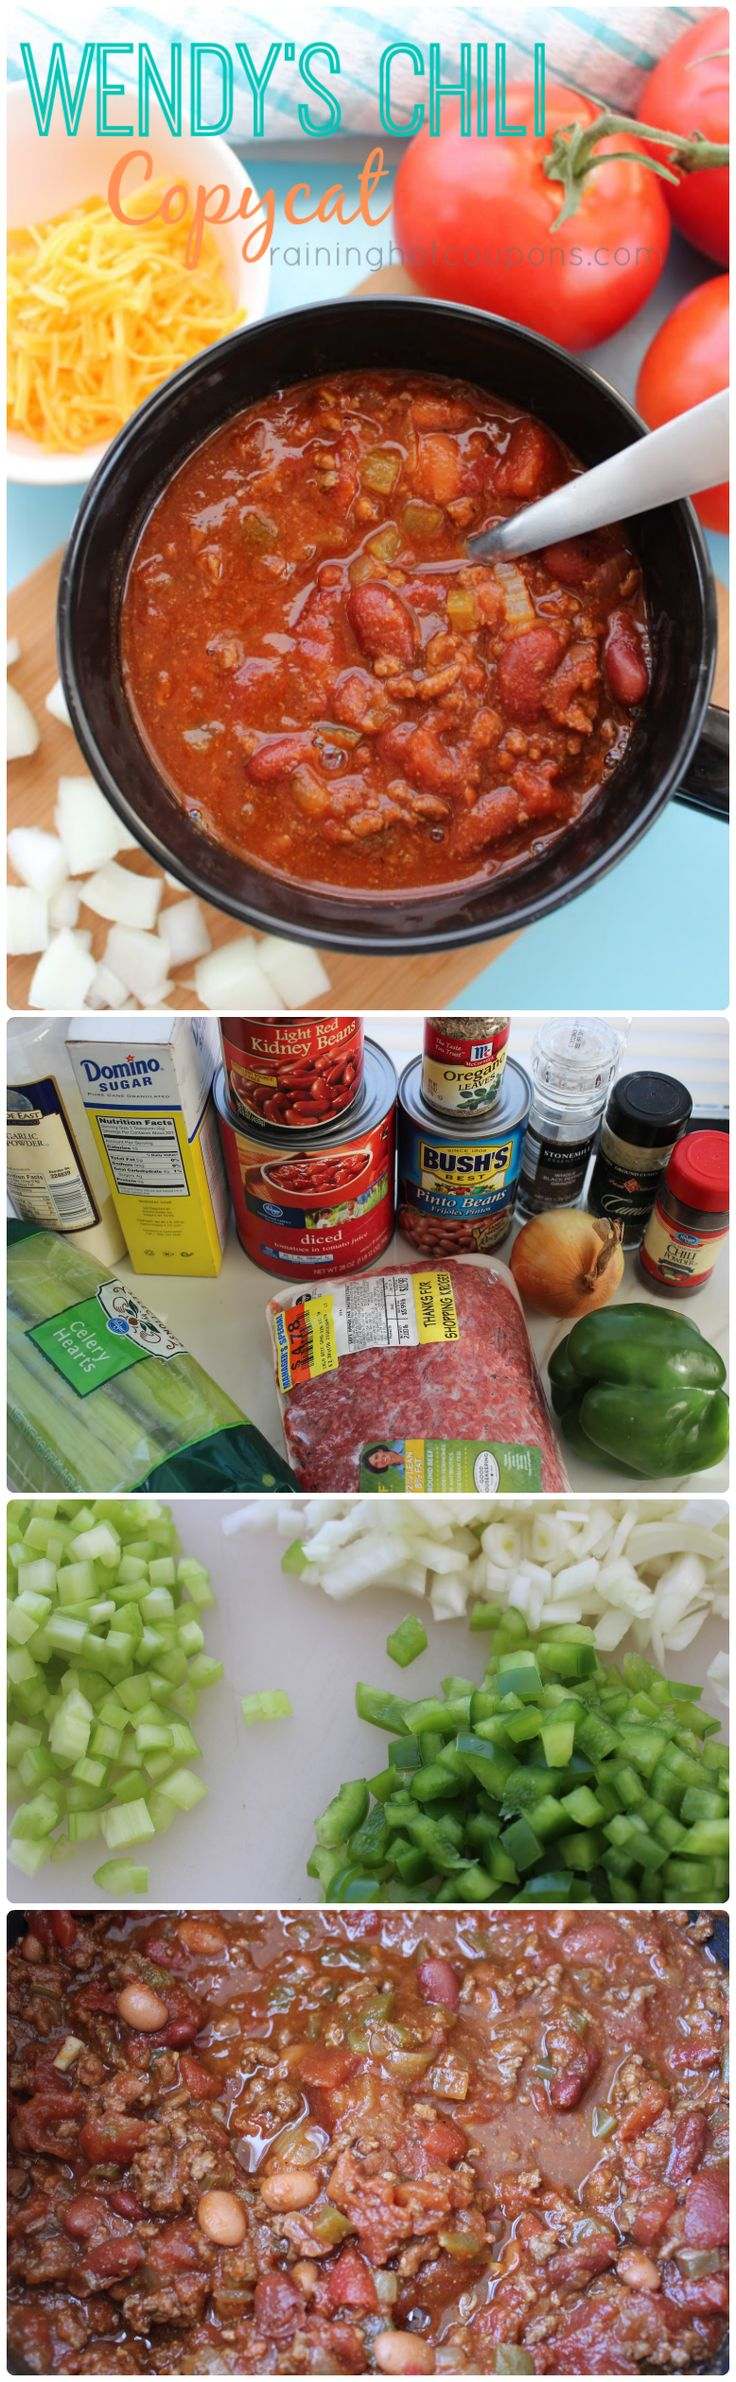 Copycat Wendy's Chili - Made it tonight and  this is the BEST chili recipe I've found so far!